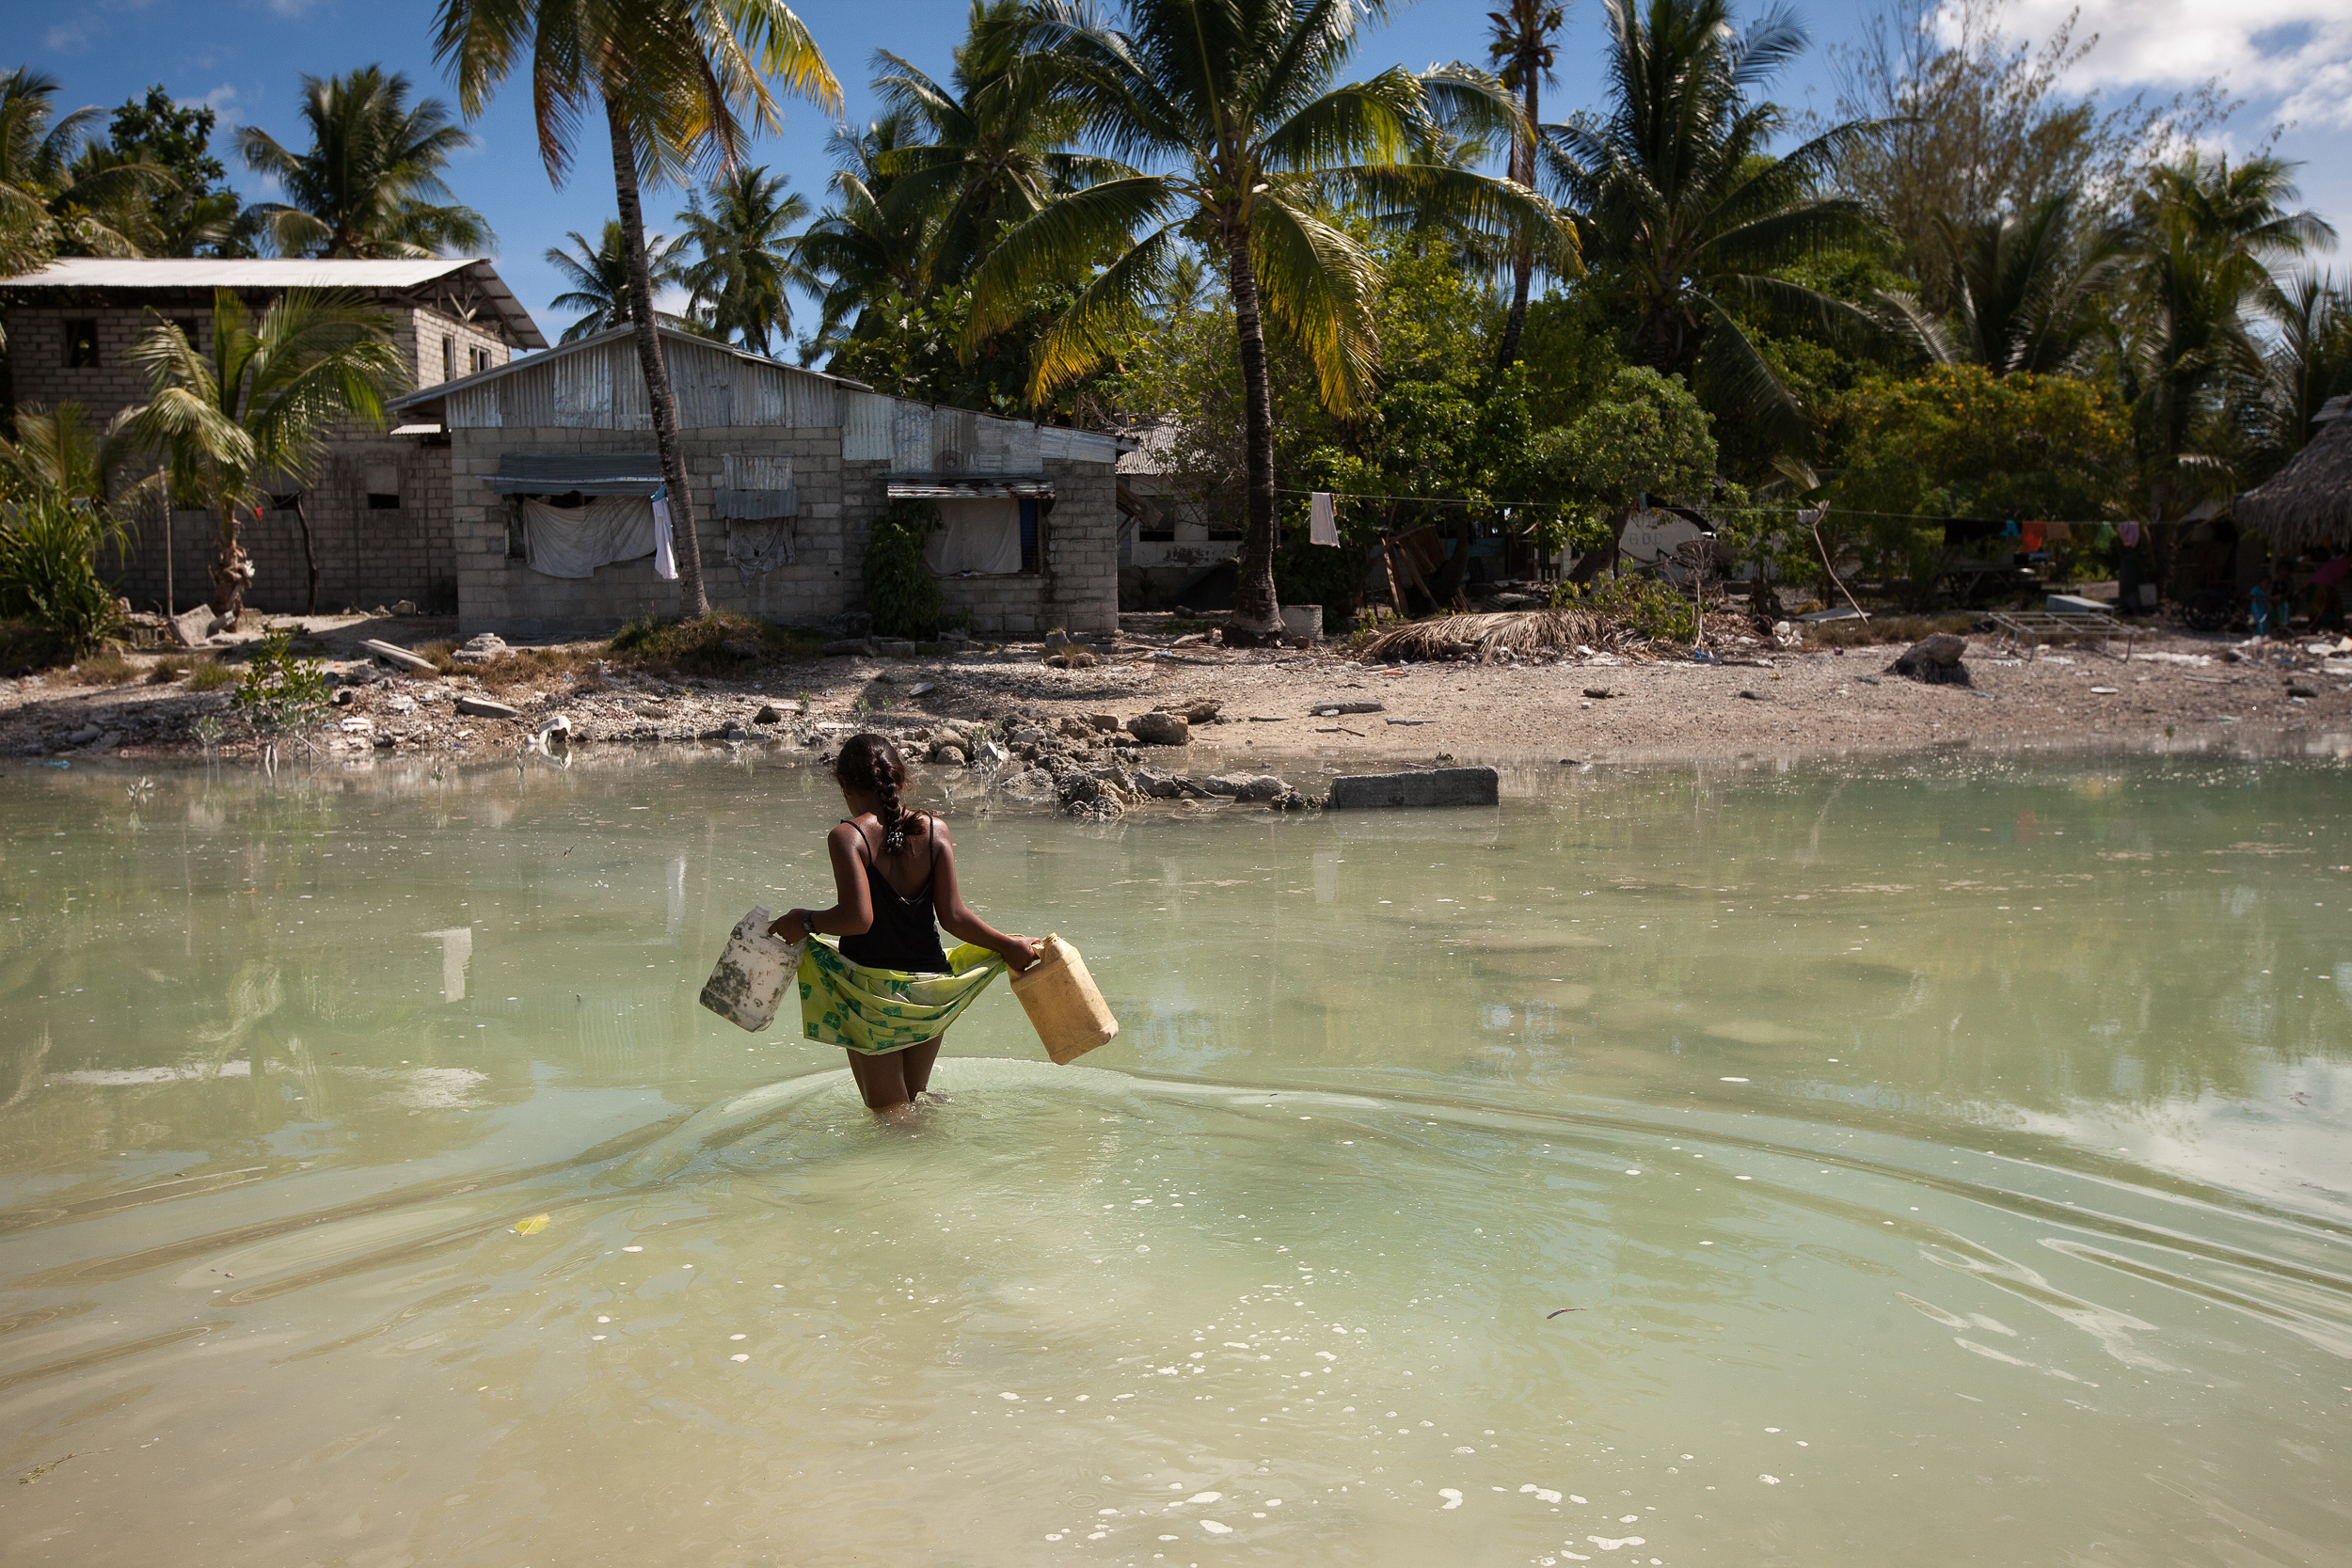 A young girl crosses the lagoon at high tide to get some water for her family who live on a thin strip of sand that gets cut off from the main island every high tide.